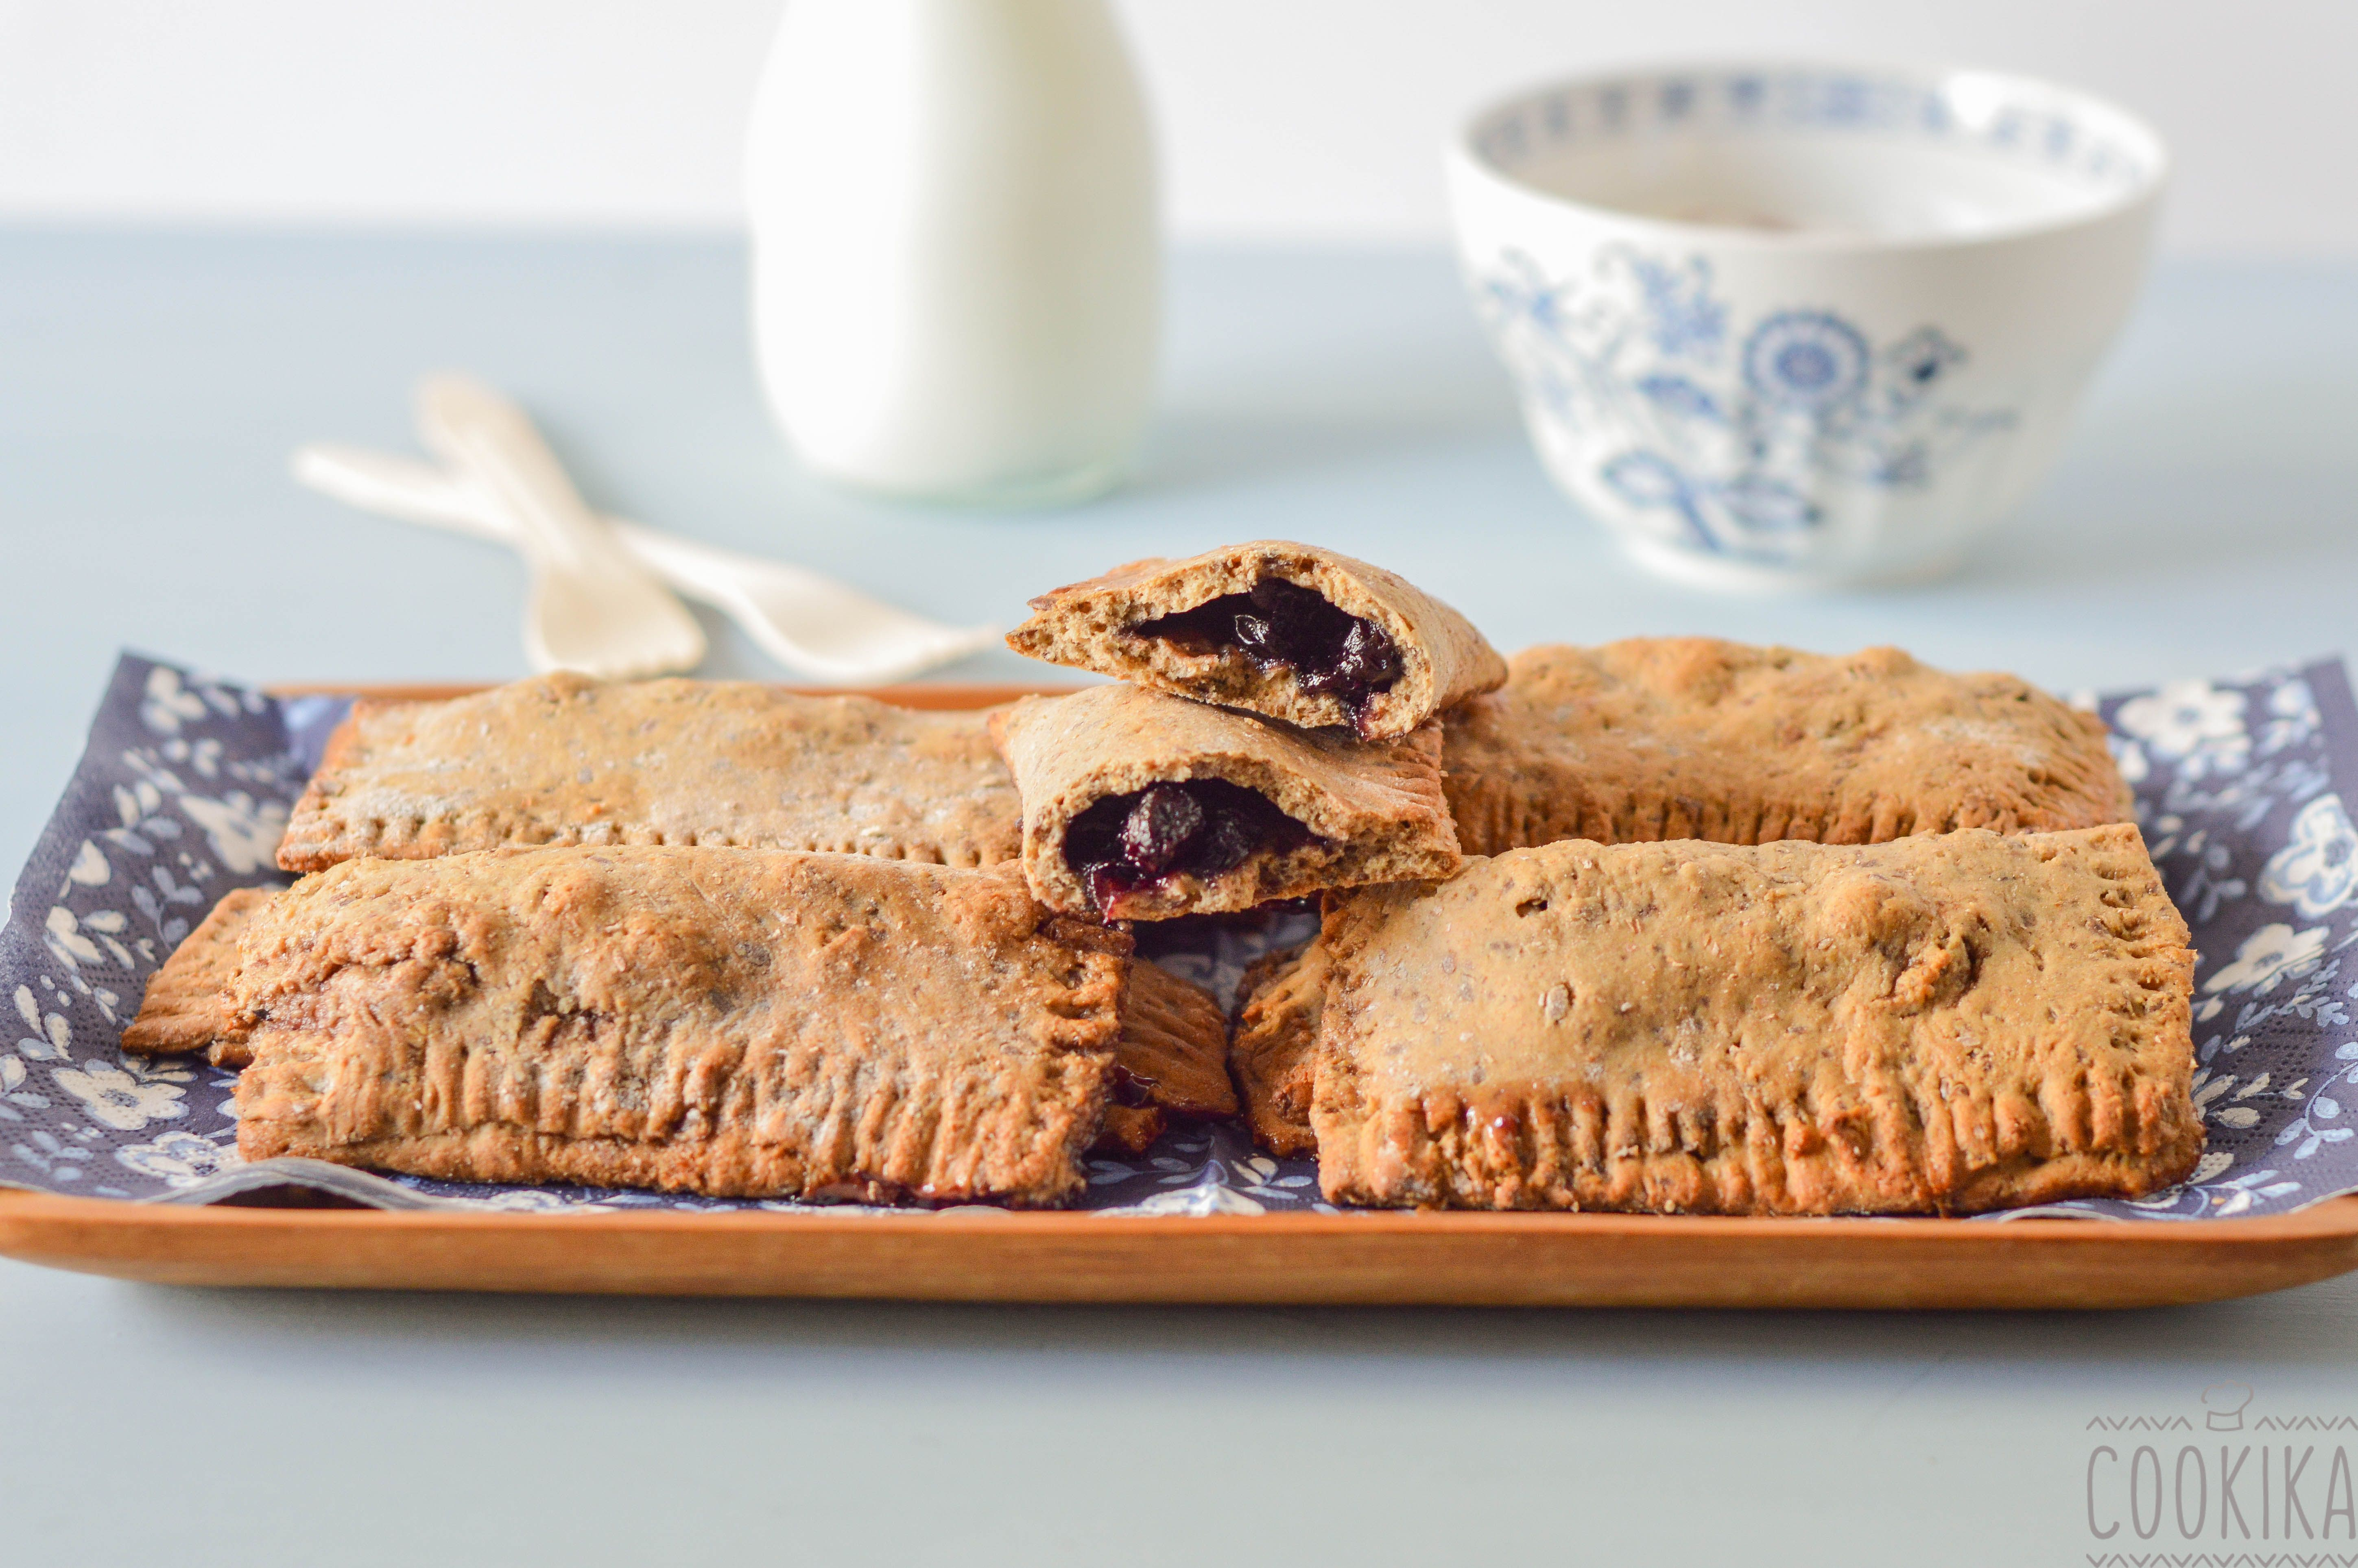 Cereal Bars filled with Blueberry Preserve.